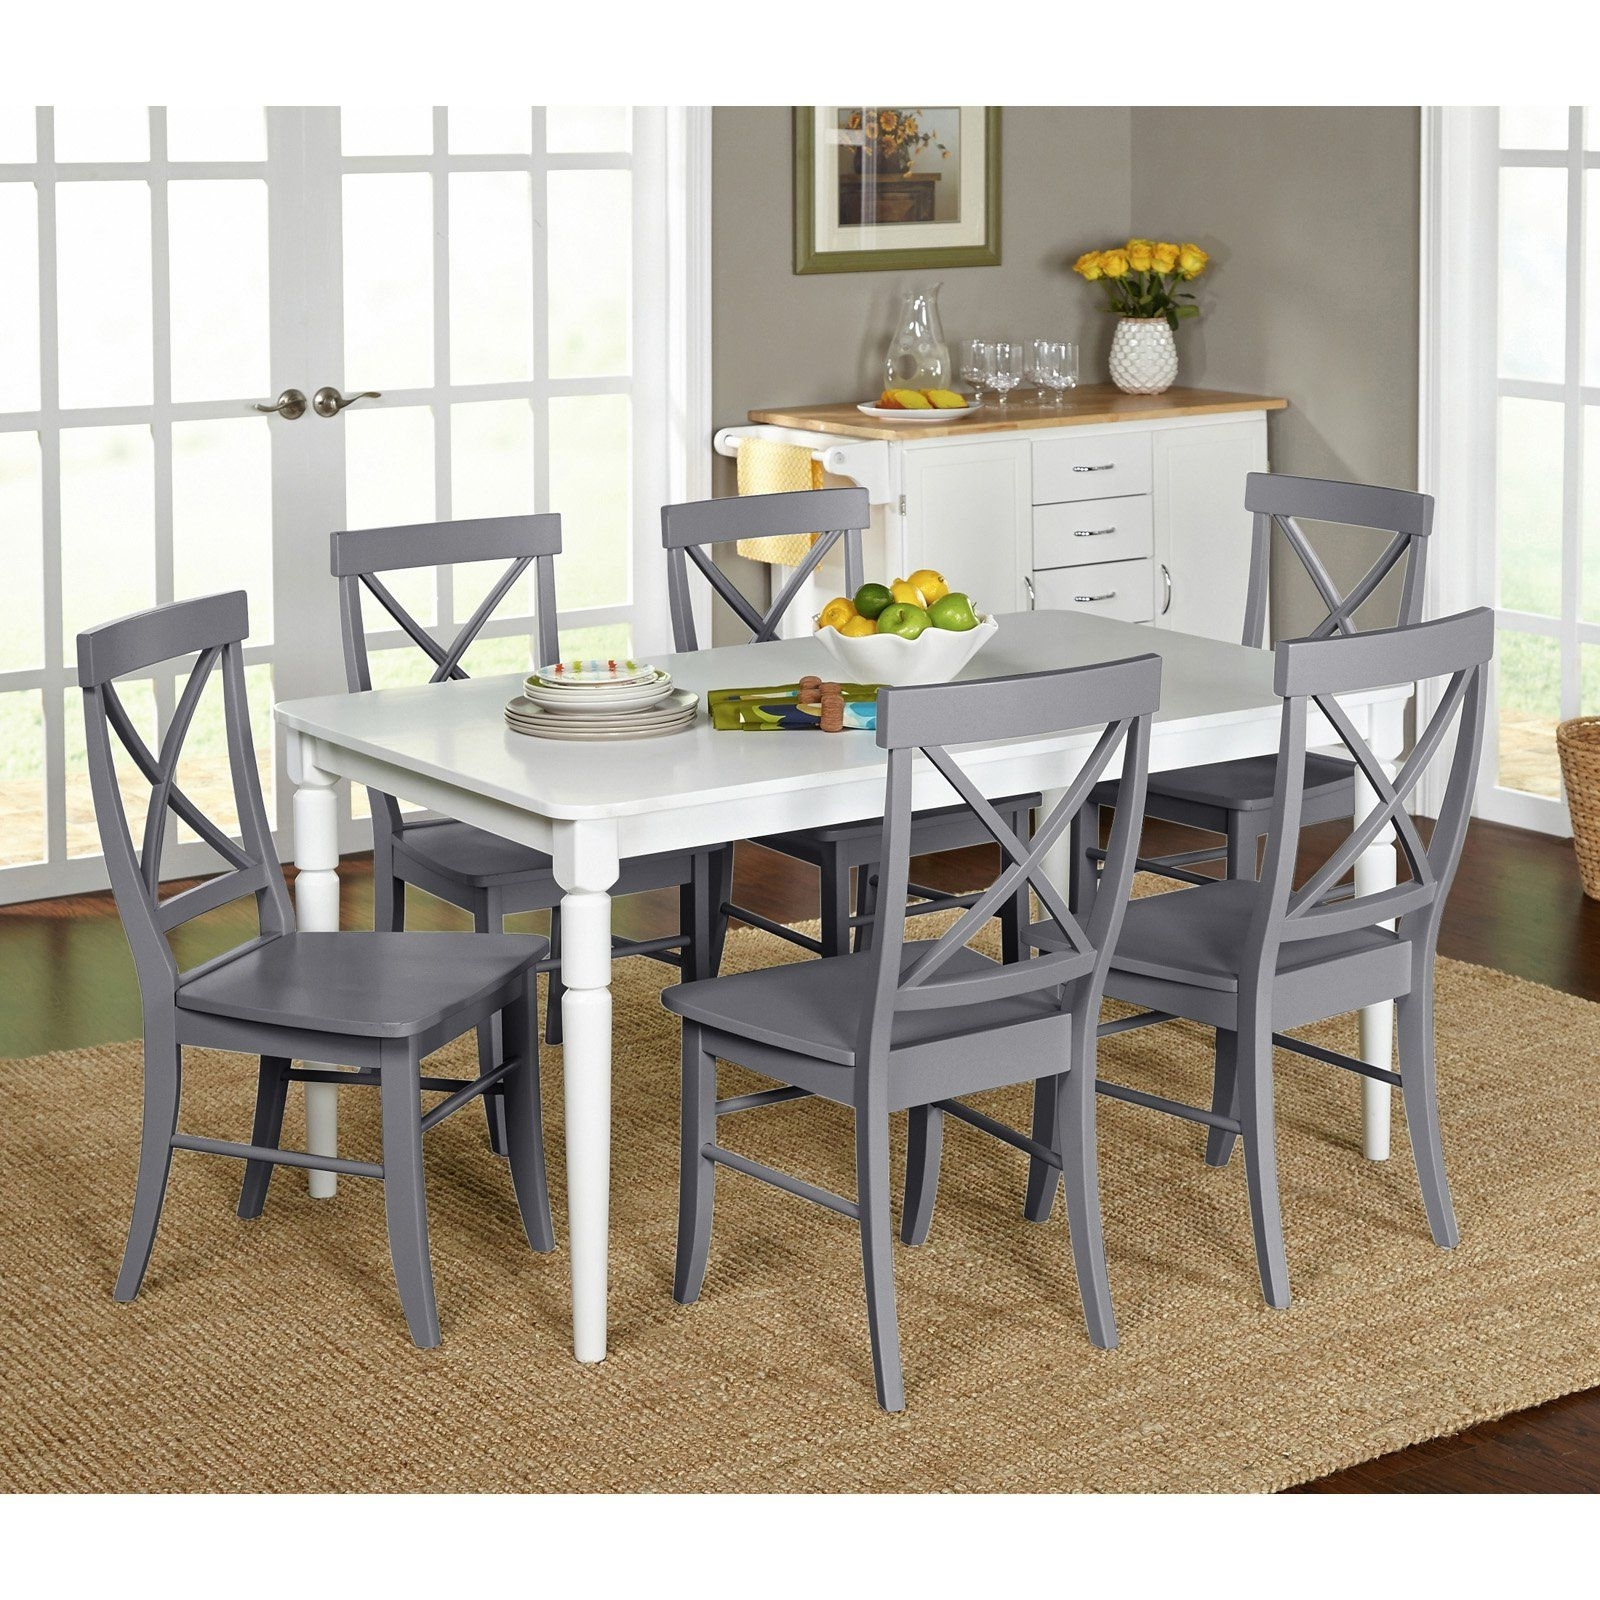 Best And Newest Market 7 Piece Dining Sets With Side Chairs Intended For Target Marketing Systems Albury 7 Piece Dining Table Set – 75127Gry (Gallery 1 of 25)